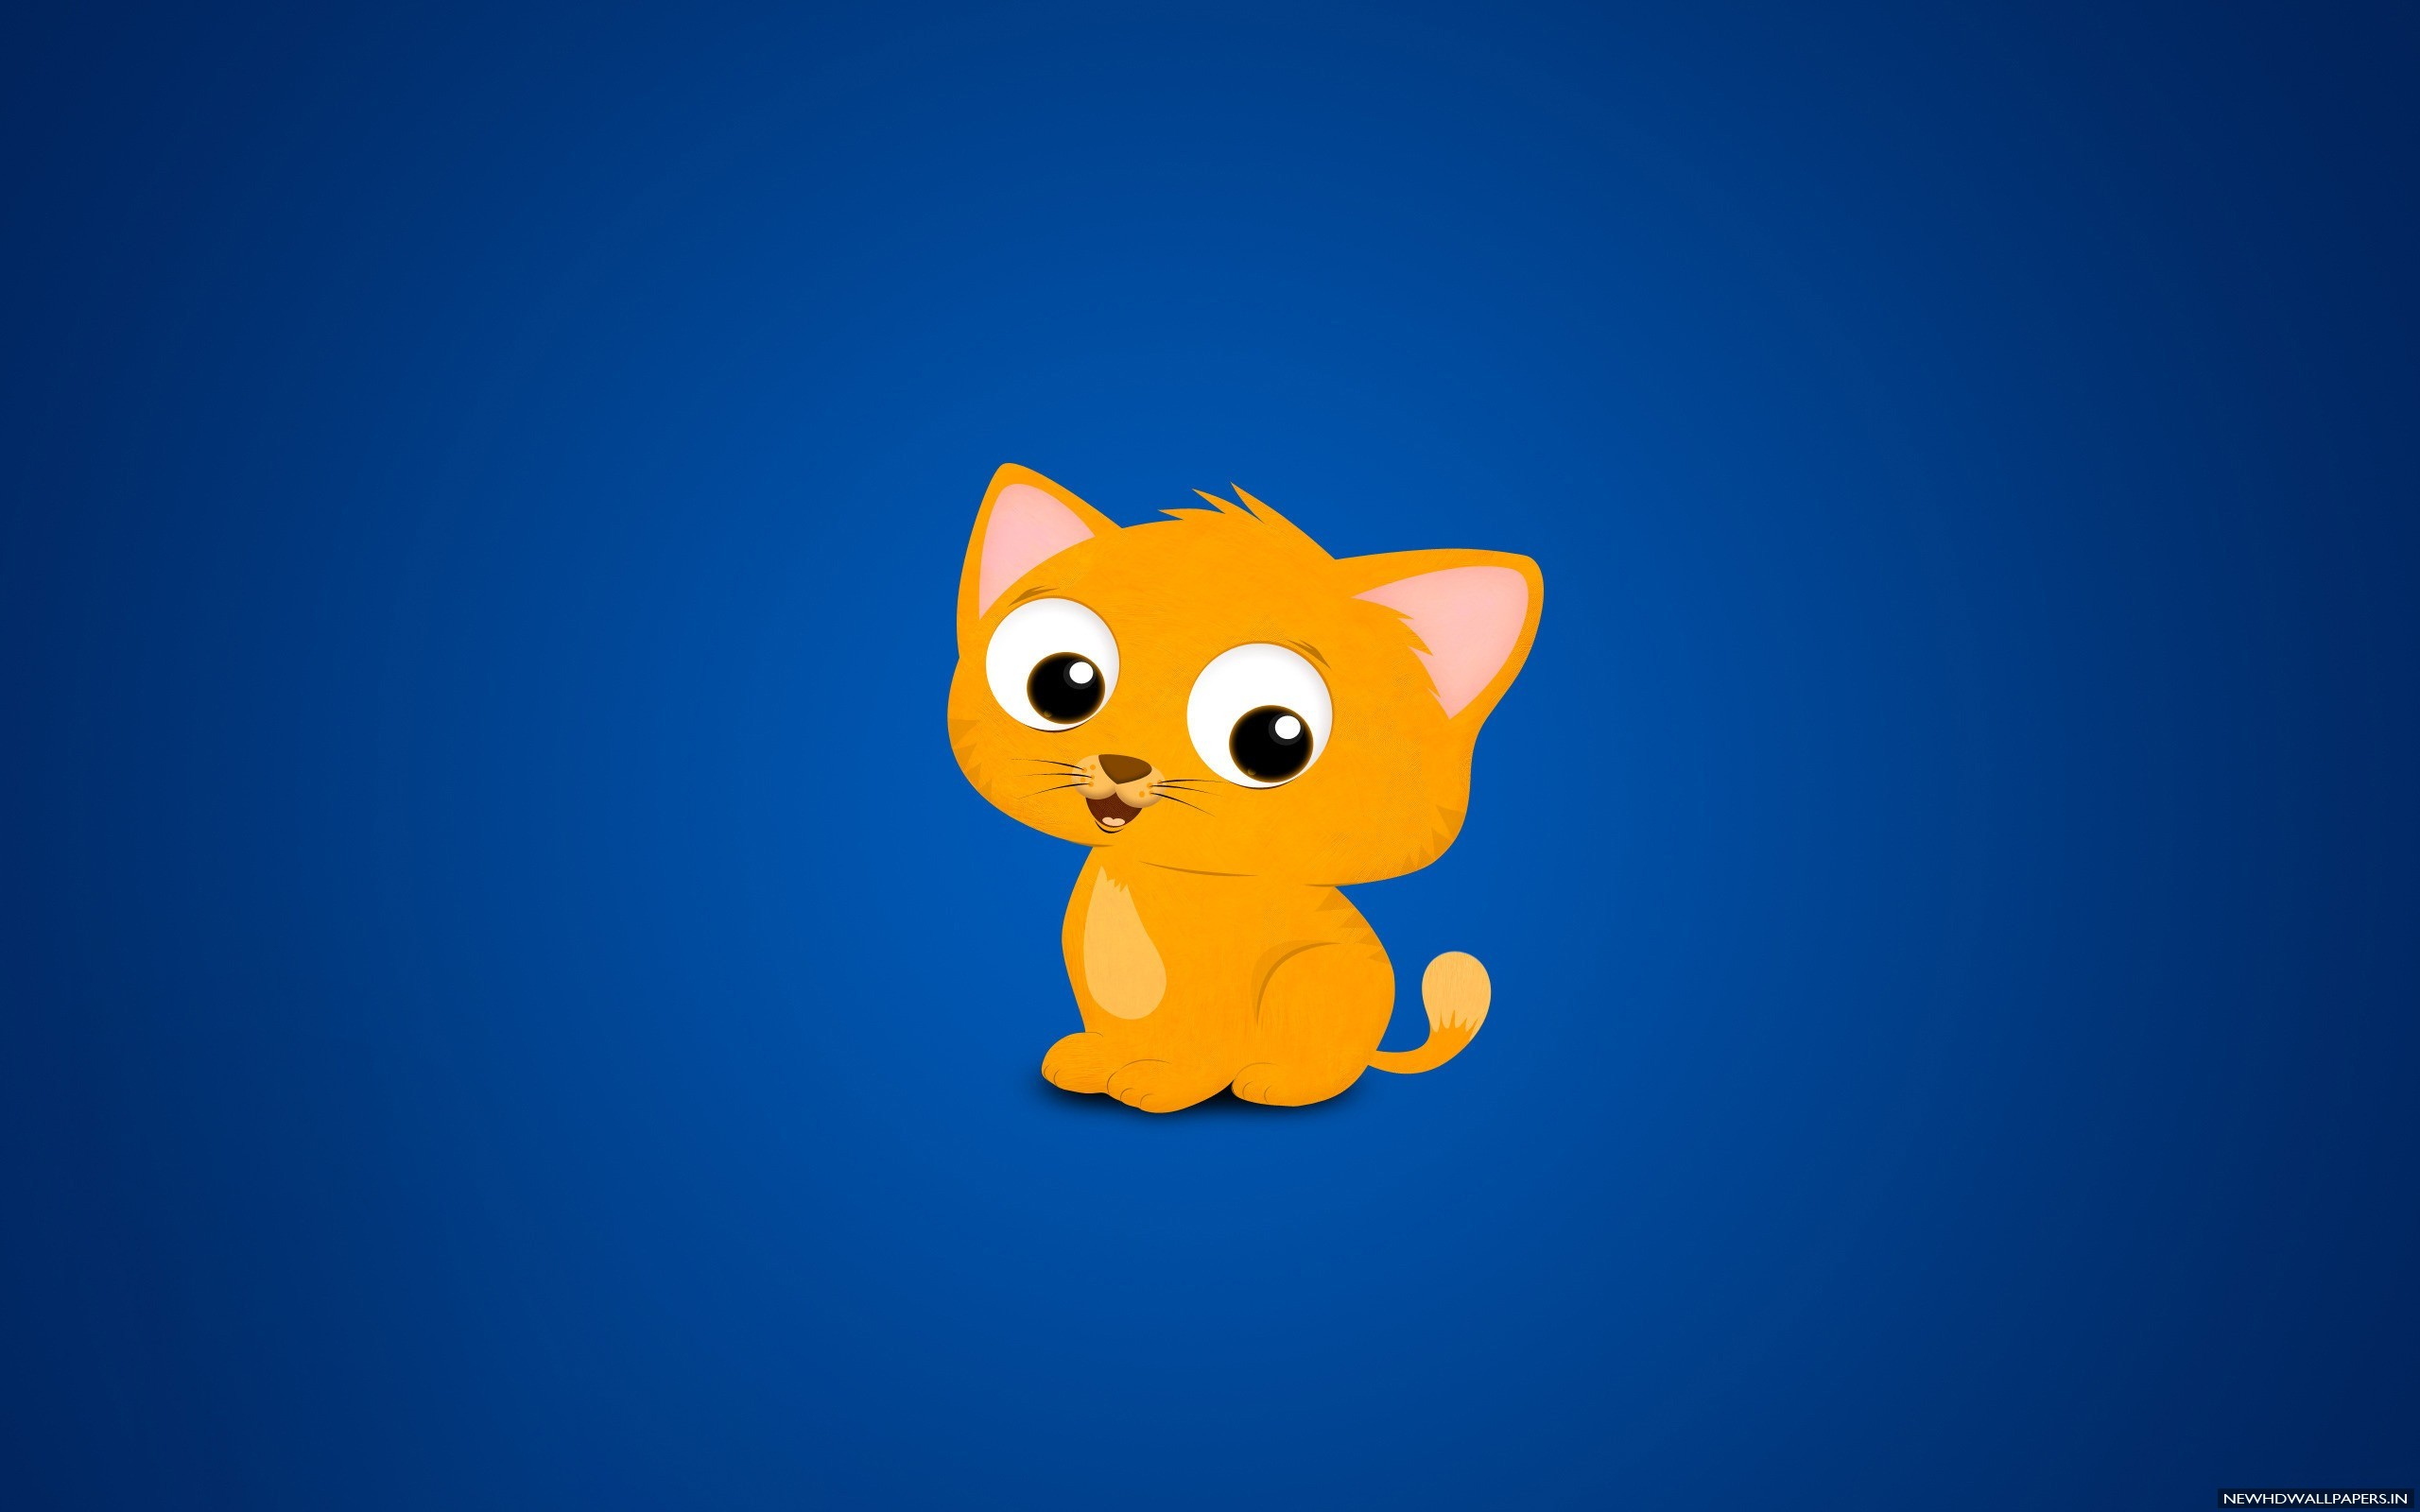 Cartoon cat wallpaper wallpapersafari - Cat wallpaper cartoon ...